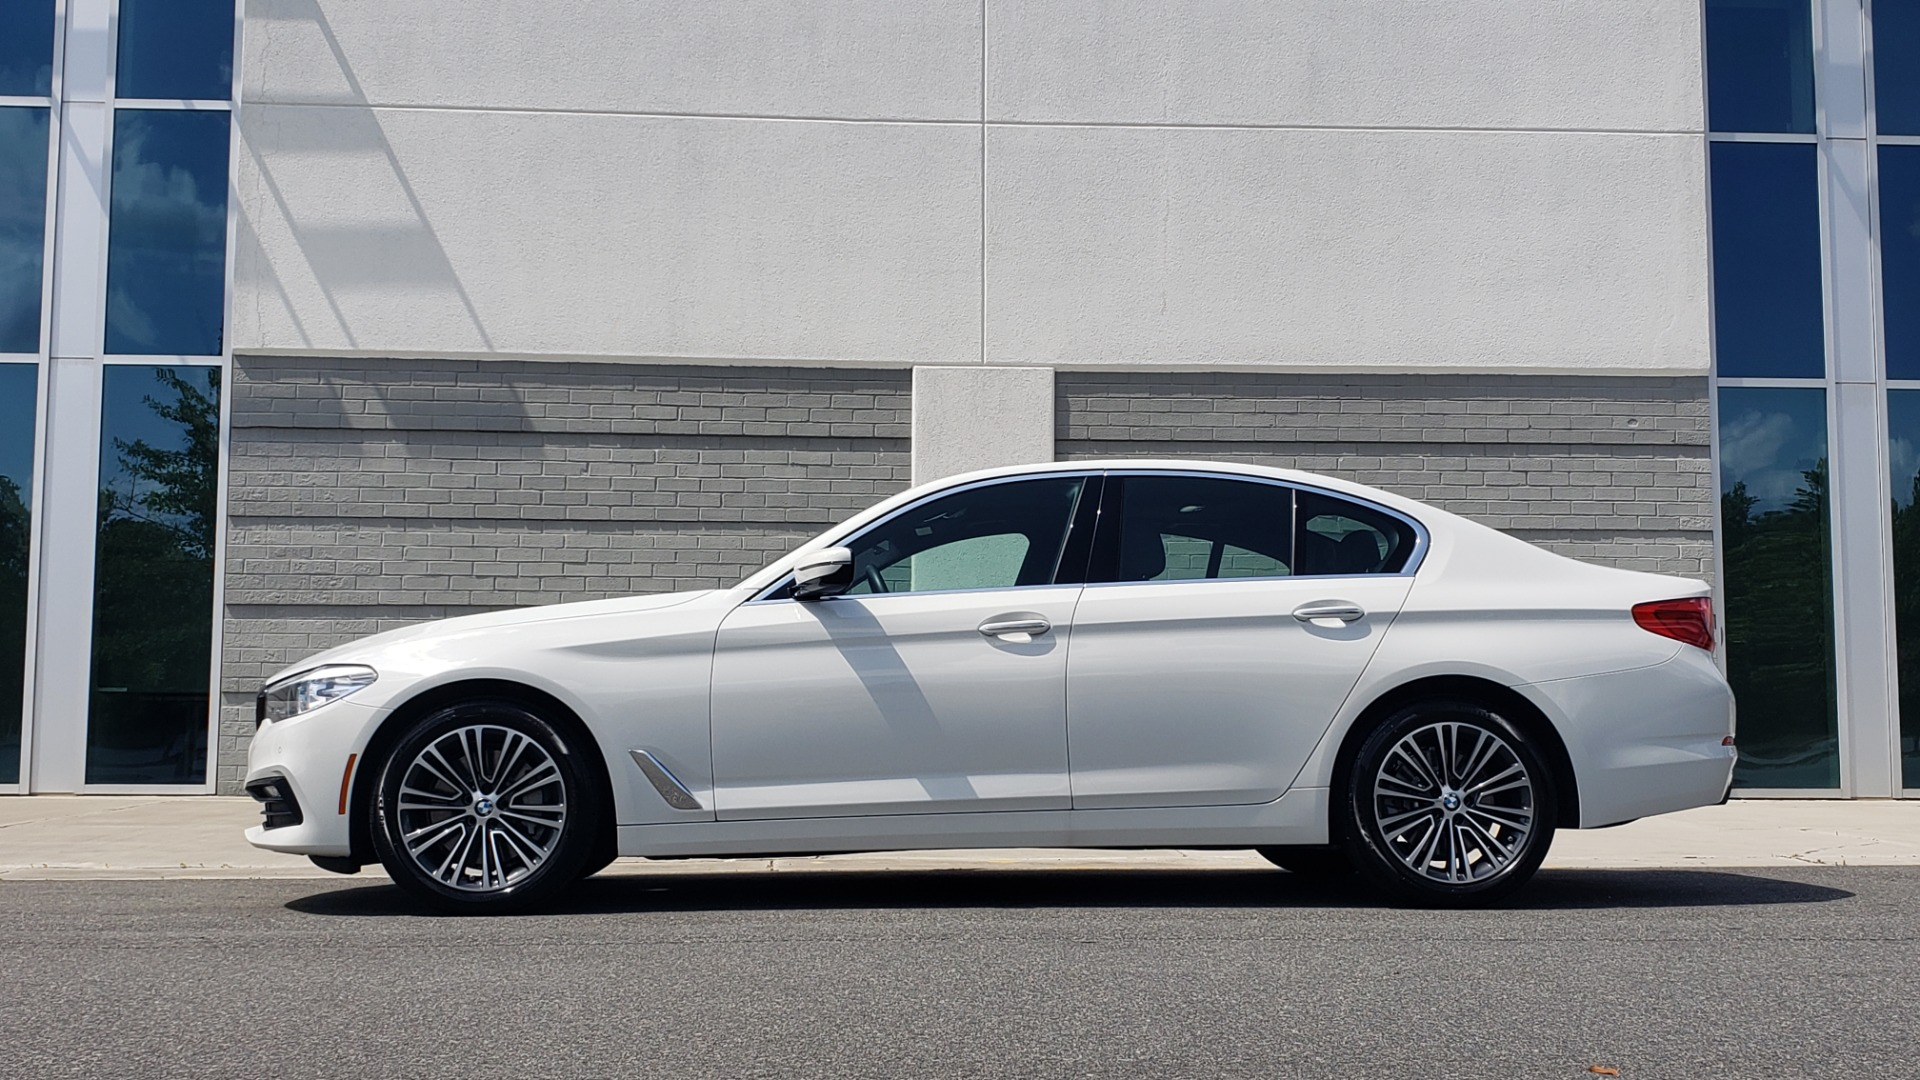 Used 2018 BMW 5 SERIES 530I XDRIVE PREMIUM / PARK ASST / NAV / SUNROOF / REARIEW for sale $37,795 at Formula Imports in Charlotte NC 28227 5